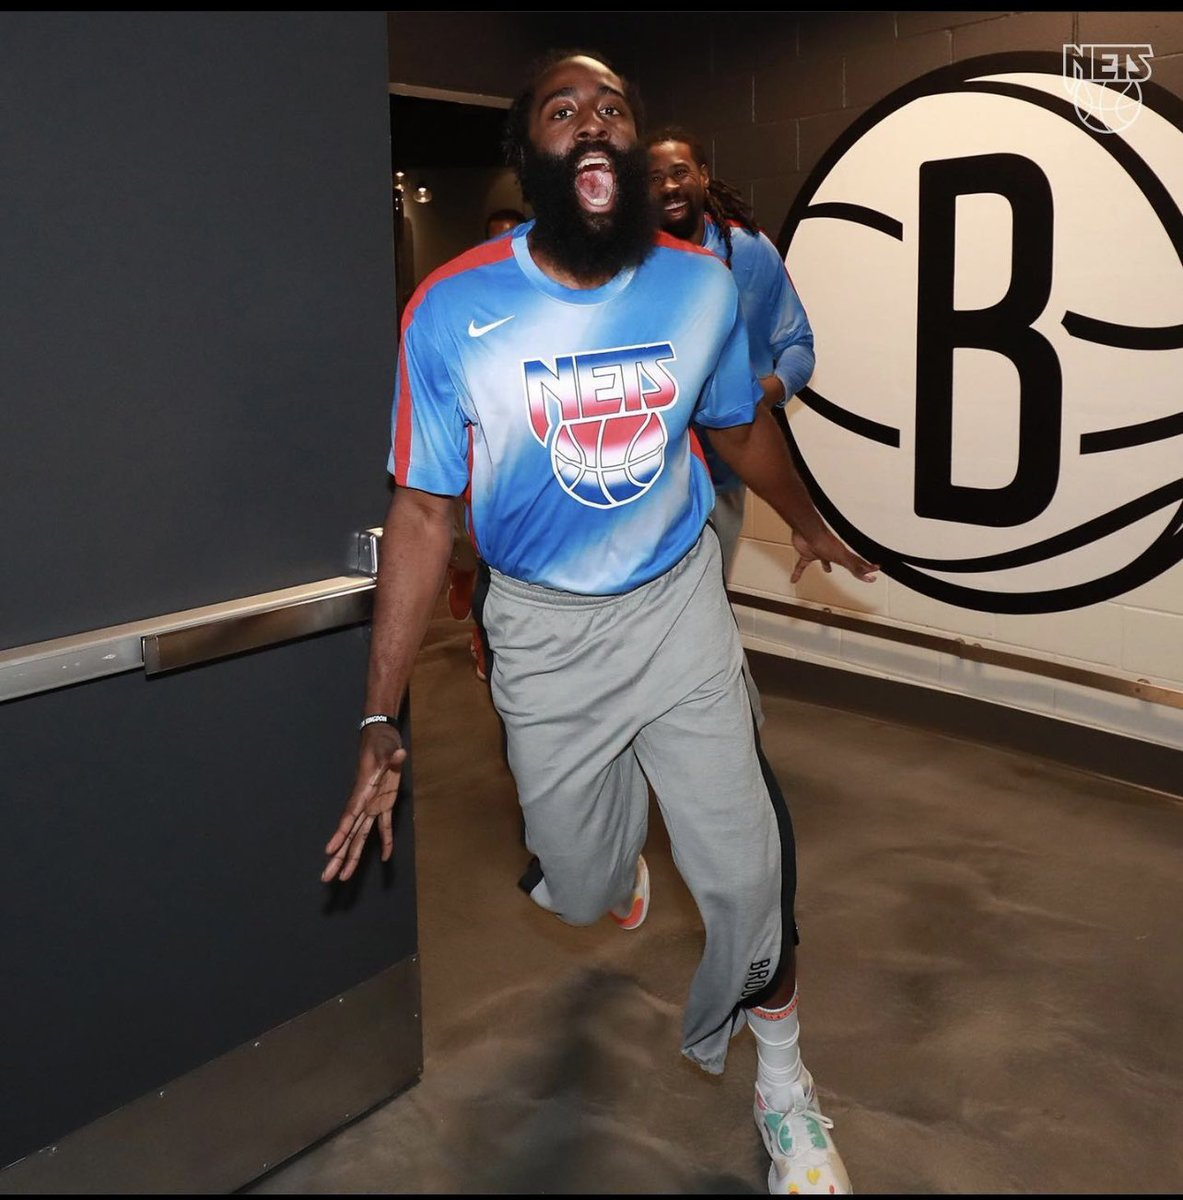 Let's talk about this narrative: James Harden looks happy and there's no price tag for that feeling. Could he have handle things better. YES! but couldn't we all. Im happy for this black man 👏🏾